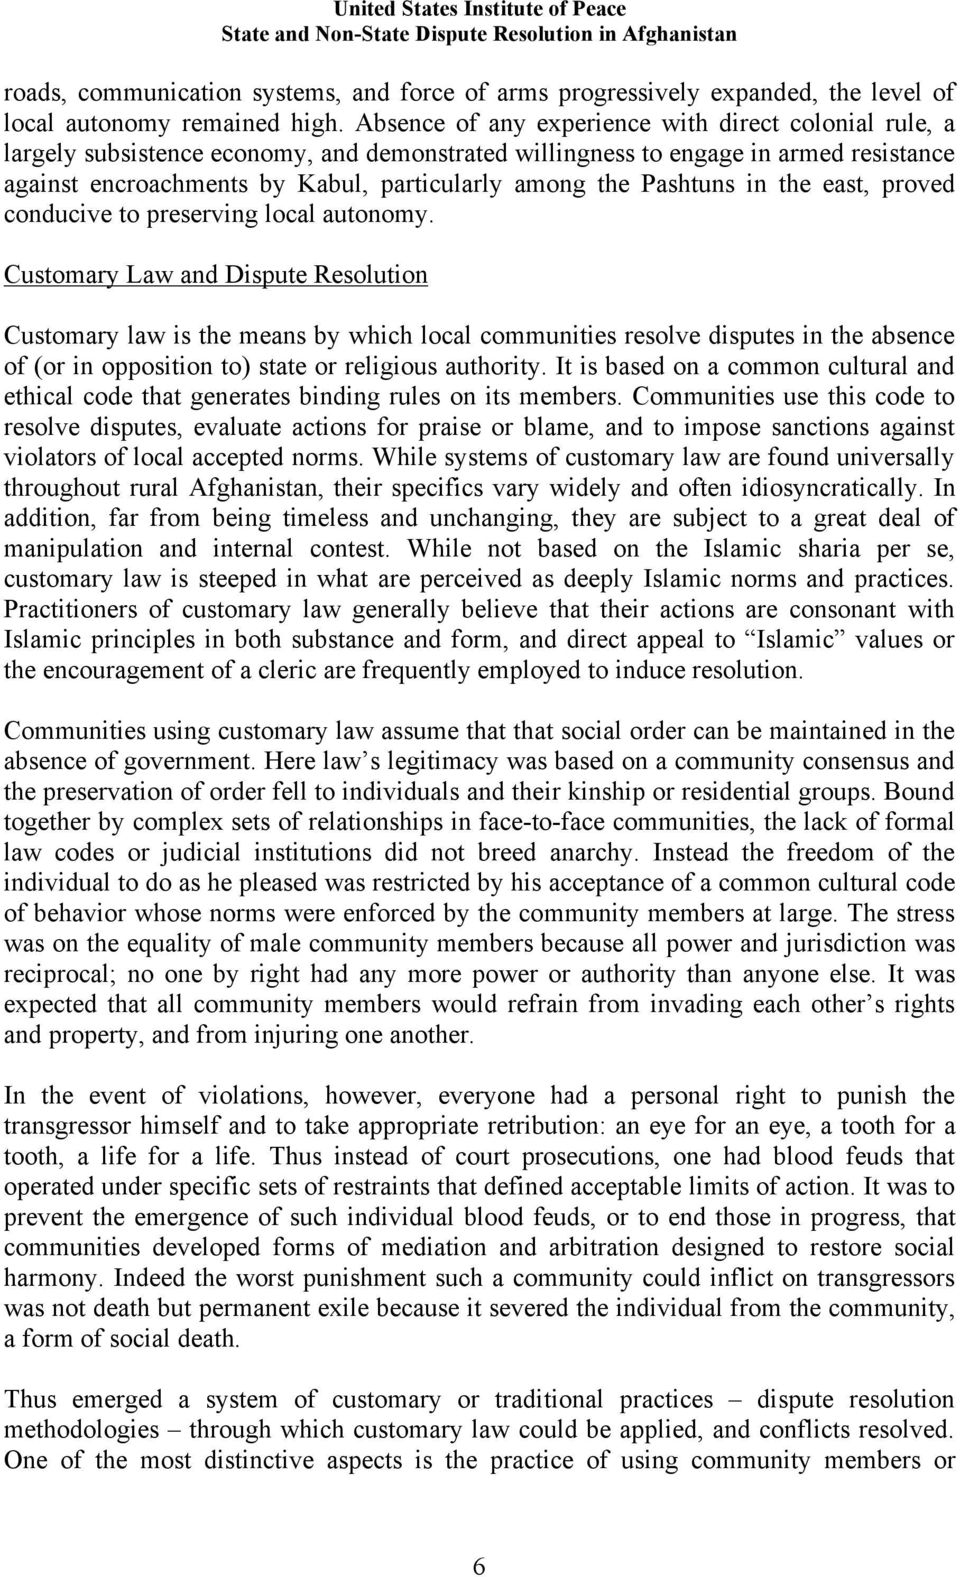 Pashtuns in the east, proved conducive to preserving local autonomy.